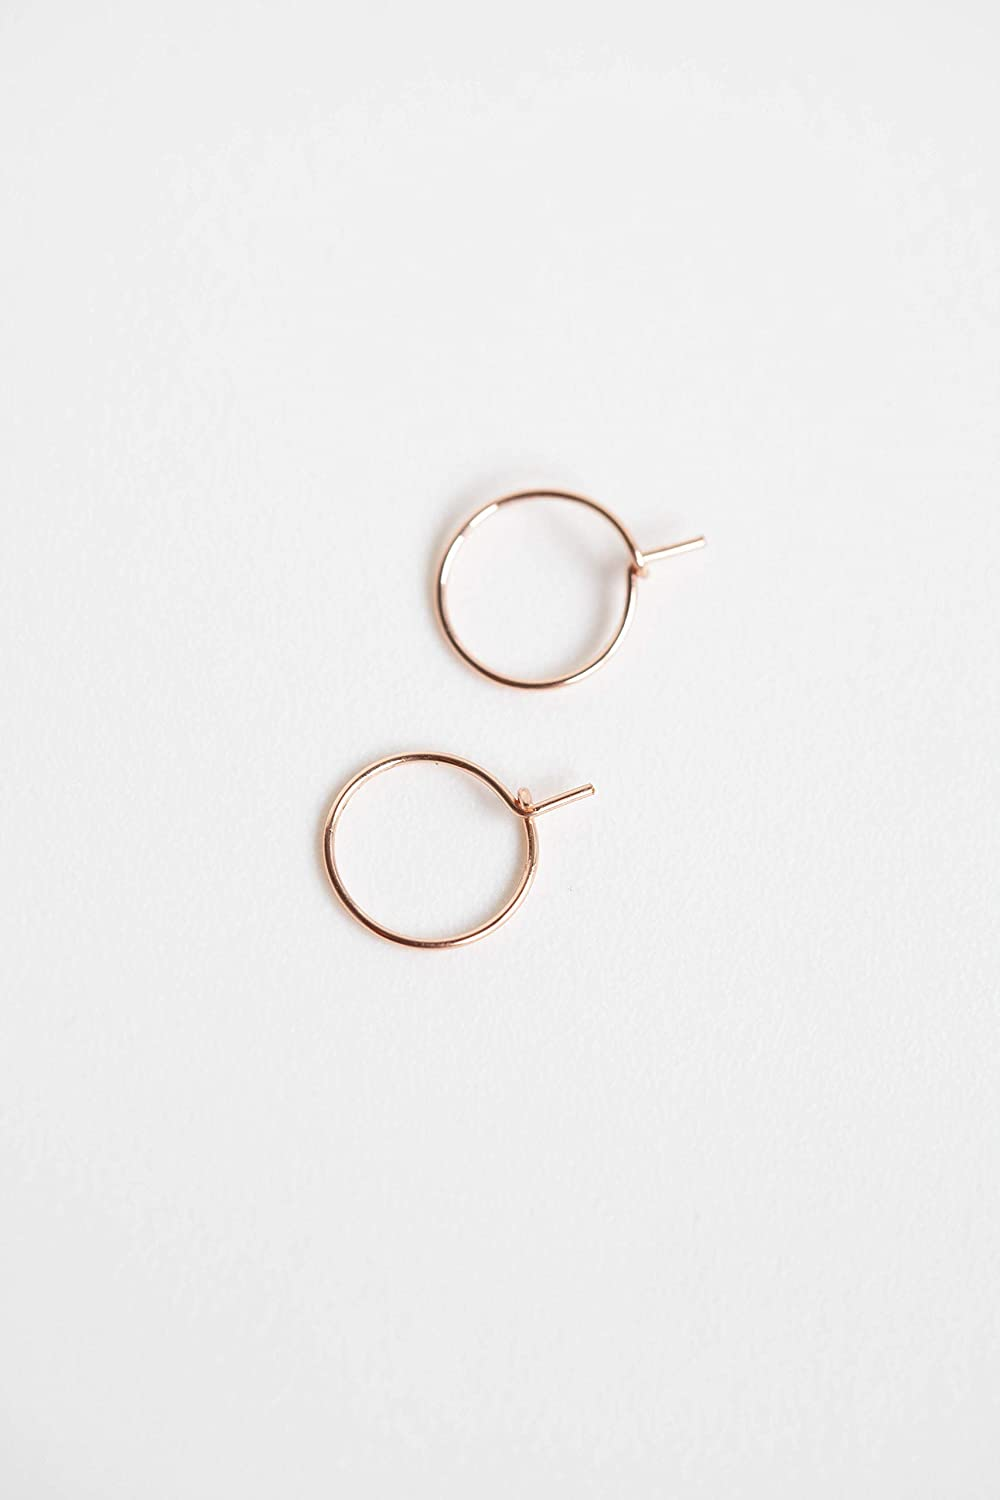 Rose Gold Thin Hoop Earrings for Woman Easy Everyday Earring 22 Gauge 8mm